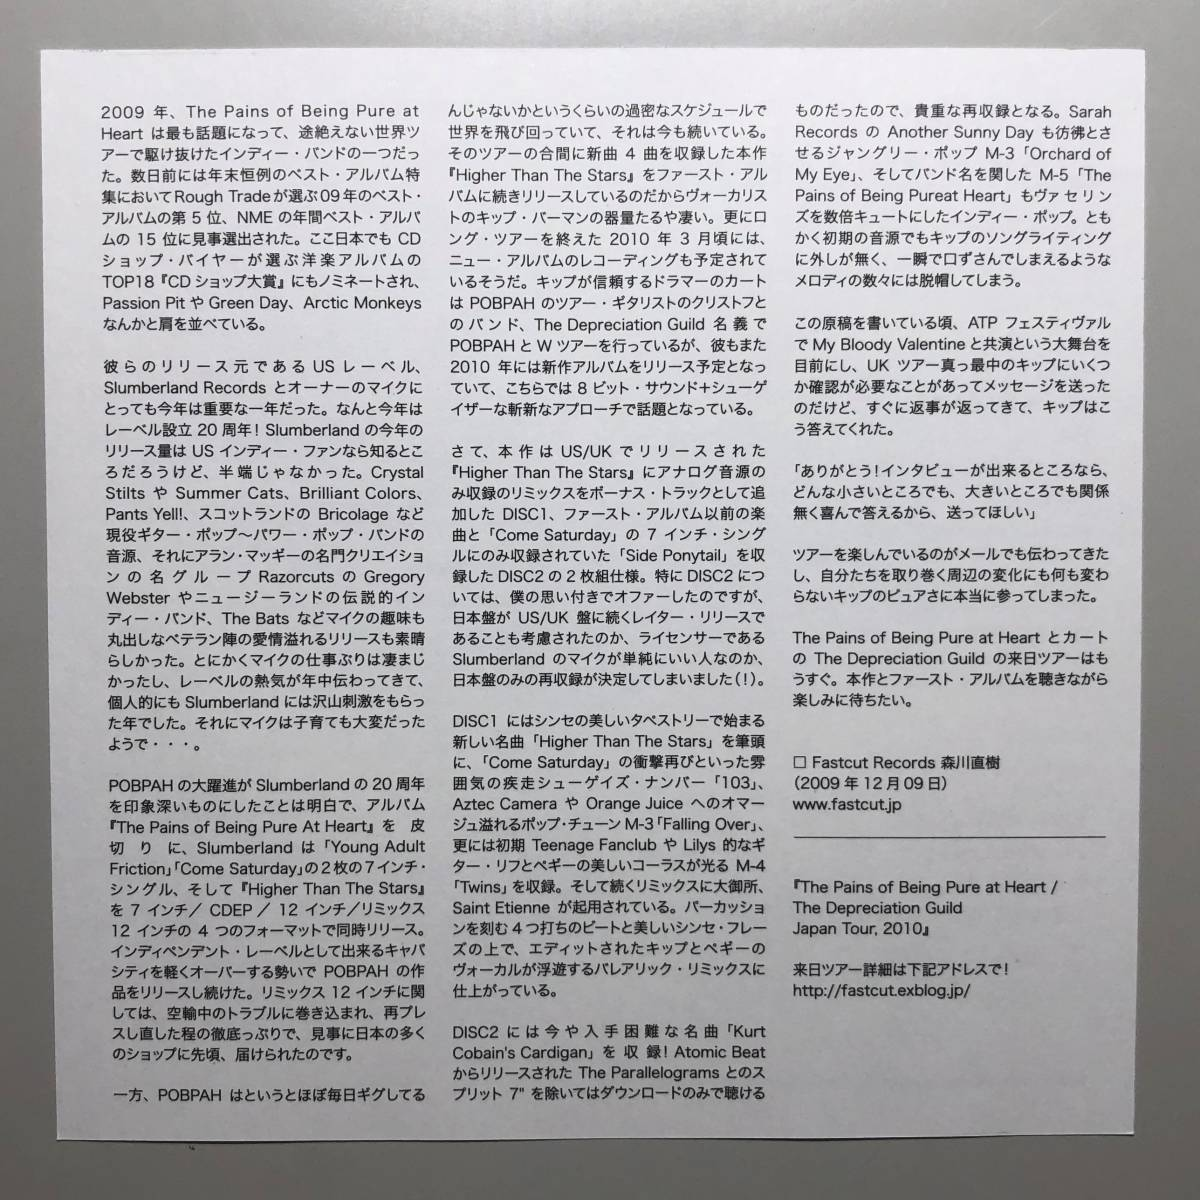 The Pains of Being Pure at Heart - Higher Than The Stars【2枚組CD 日本盤】ペインズ シューゲイザー 国内盤_画像9